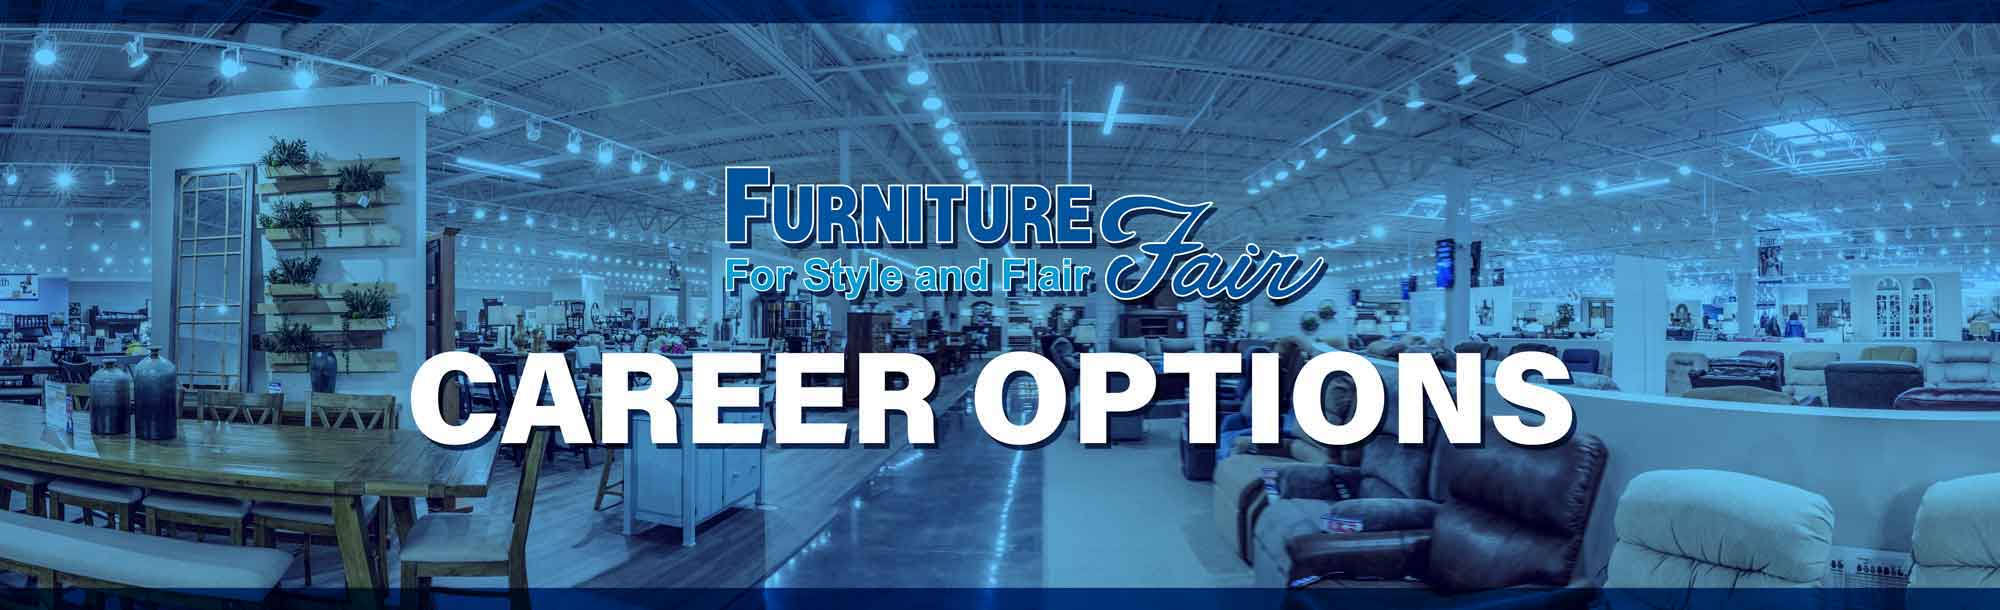 5 Great Career Opportunities At Furniture Fair